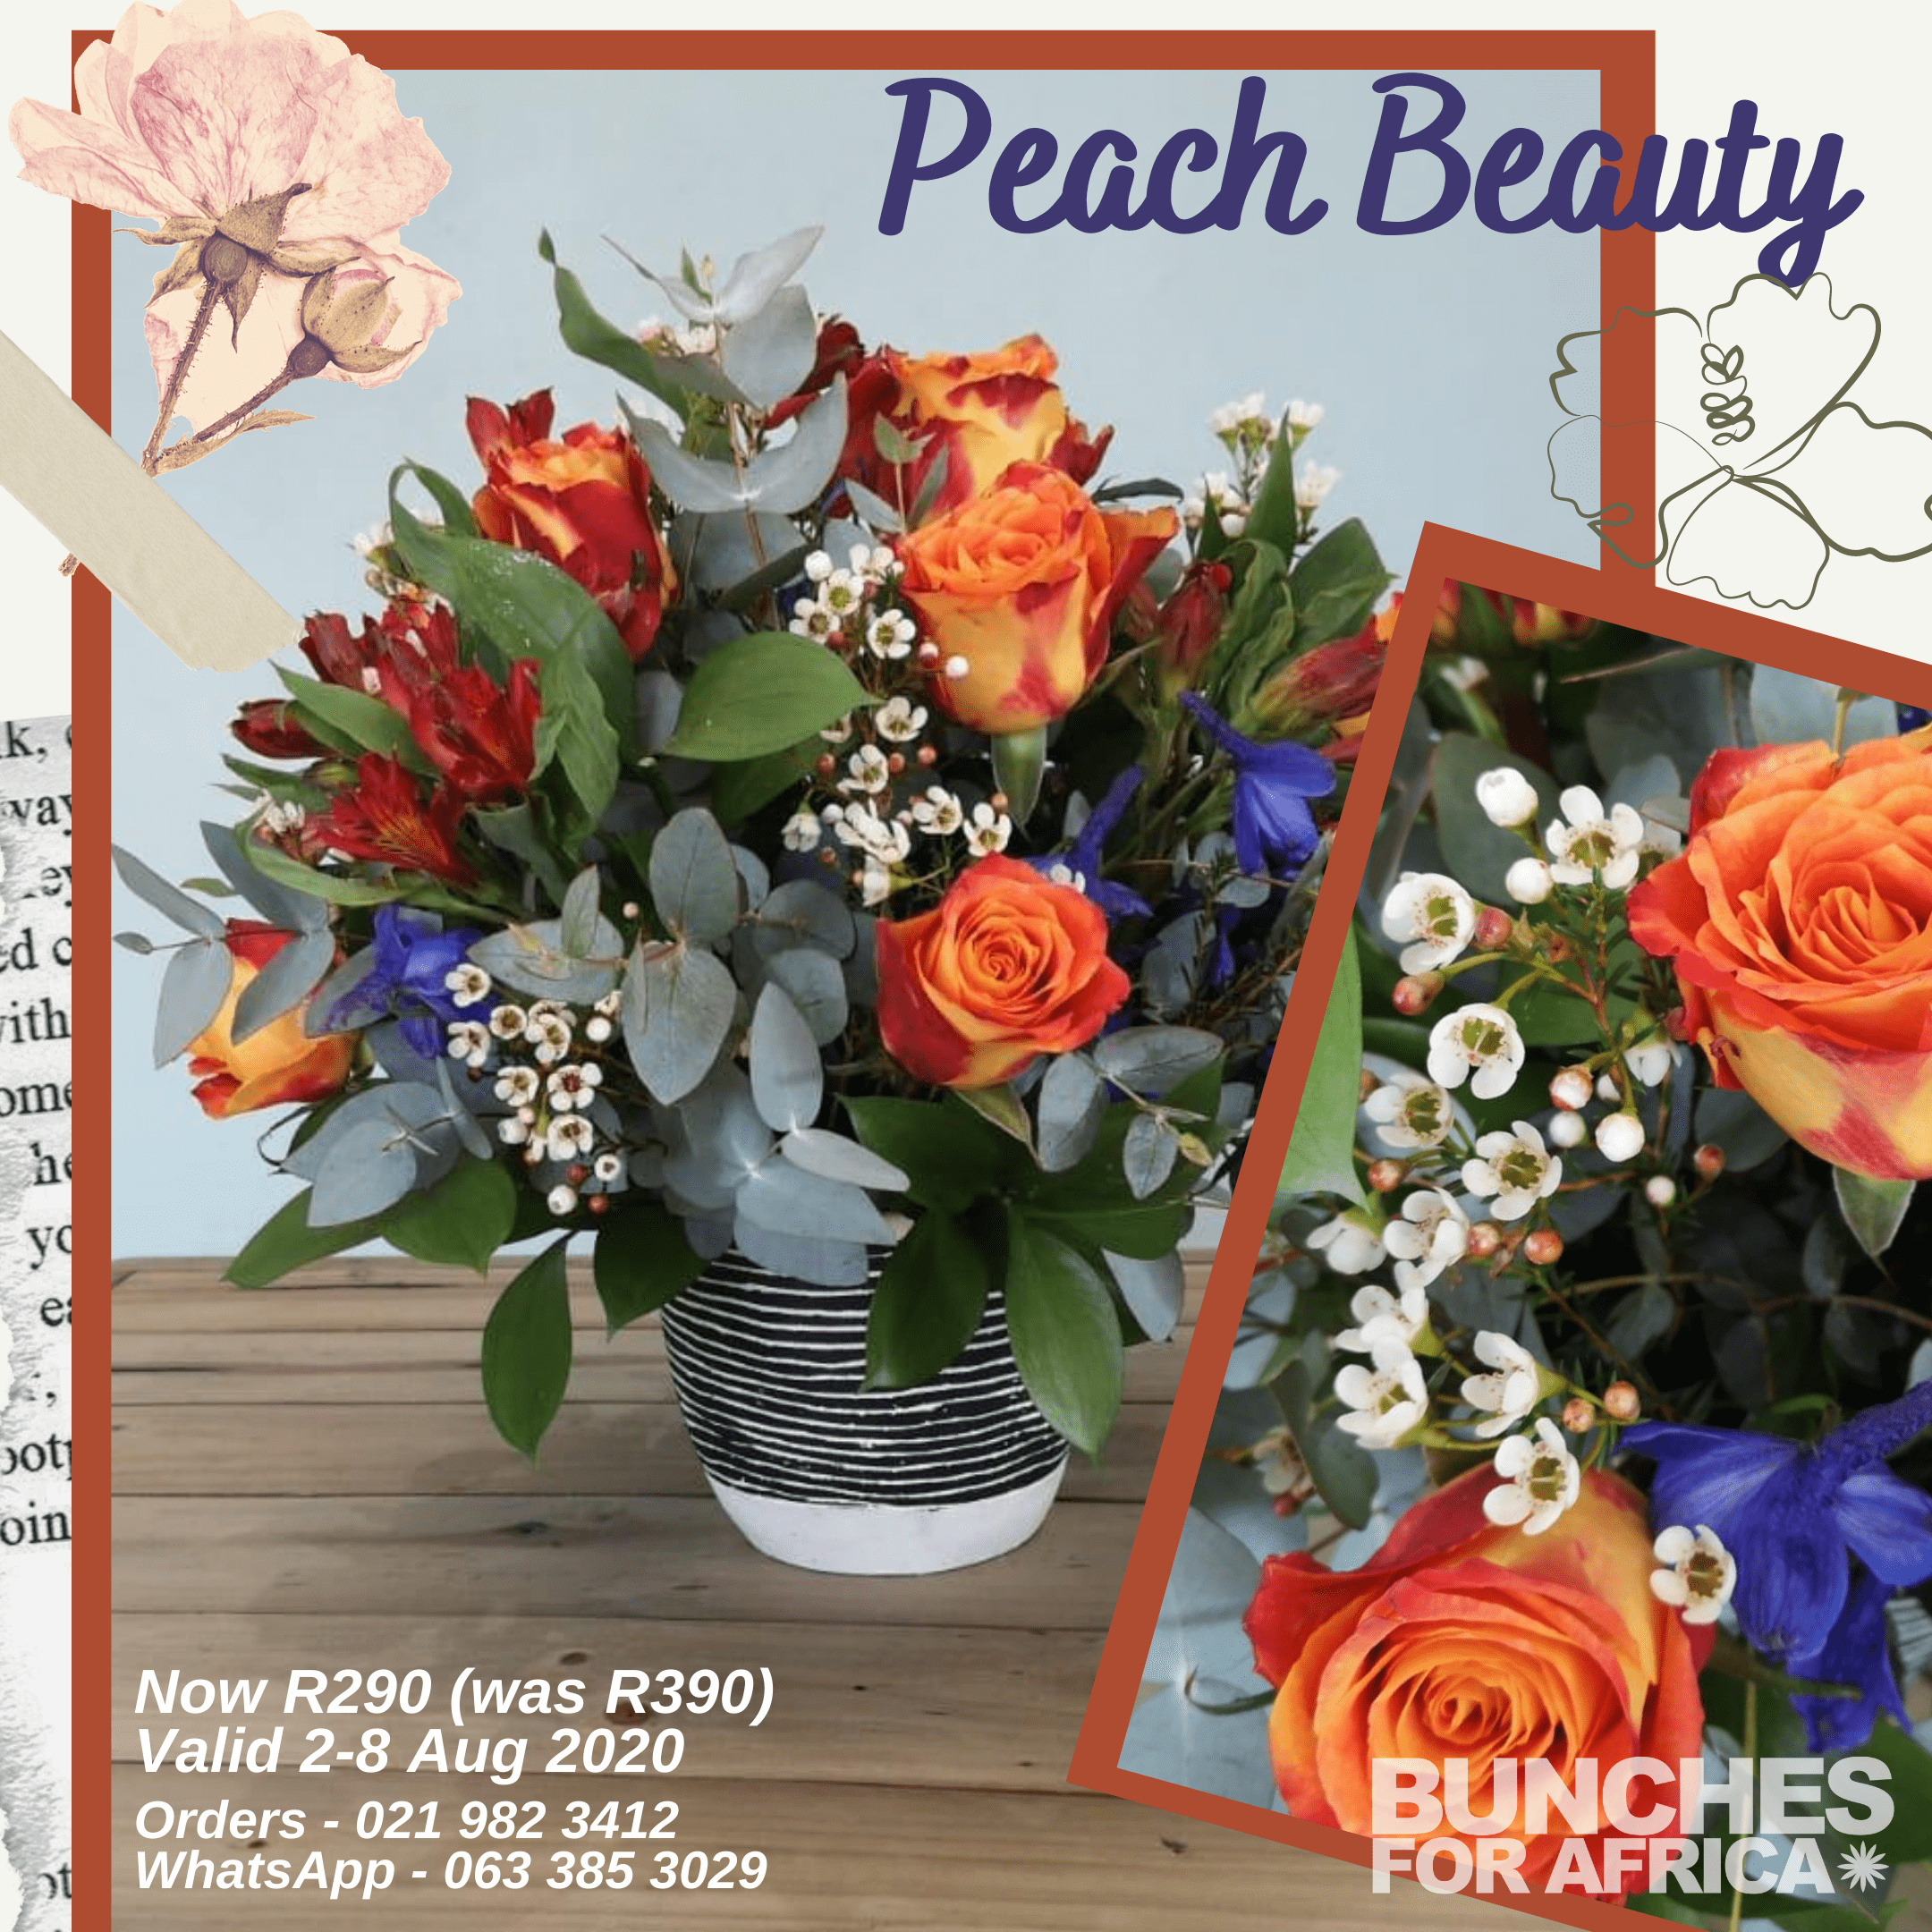 Peach Beauty valid 2-8 Aug